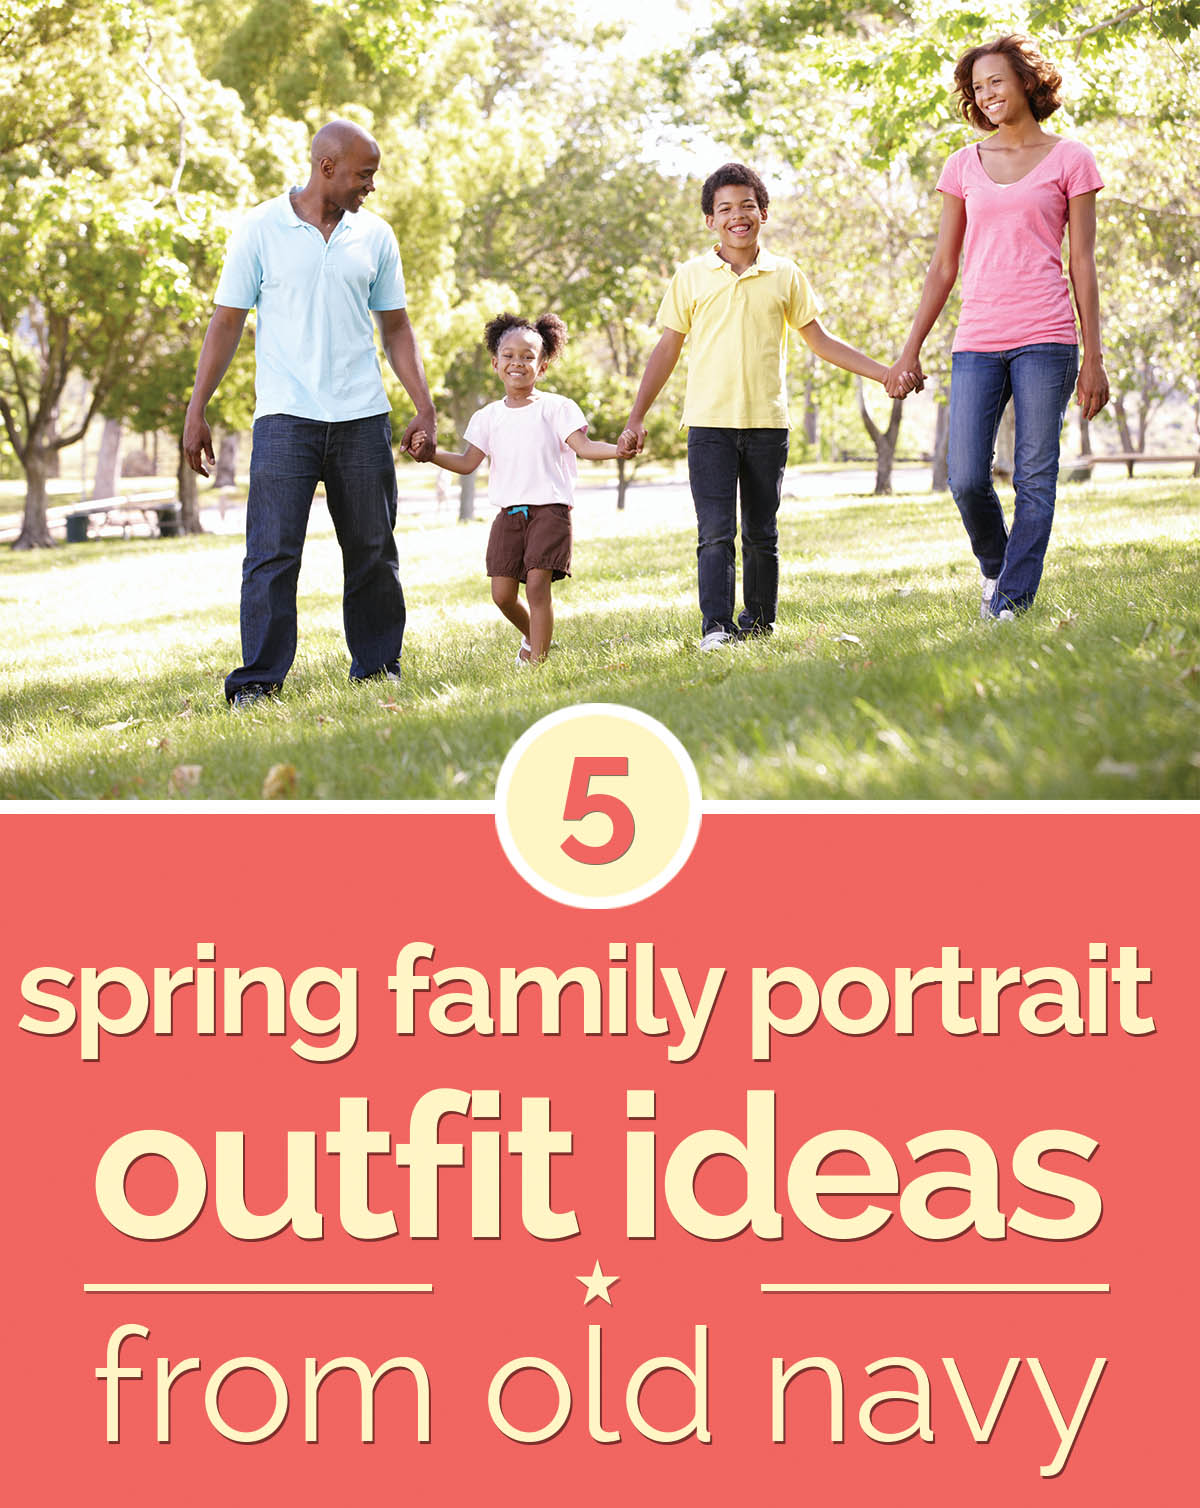 Outdoor family portrait what to wear